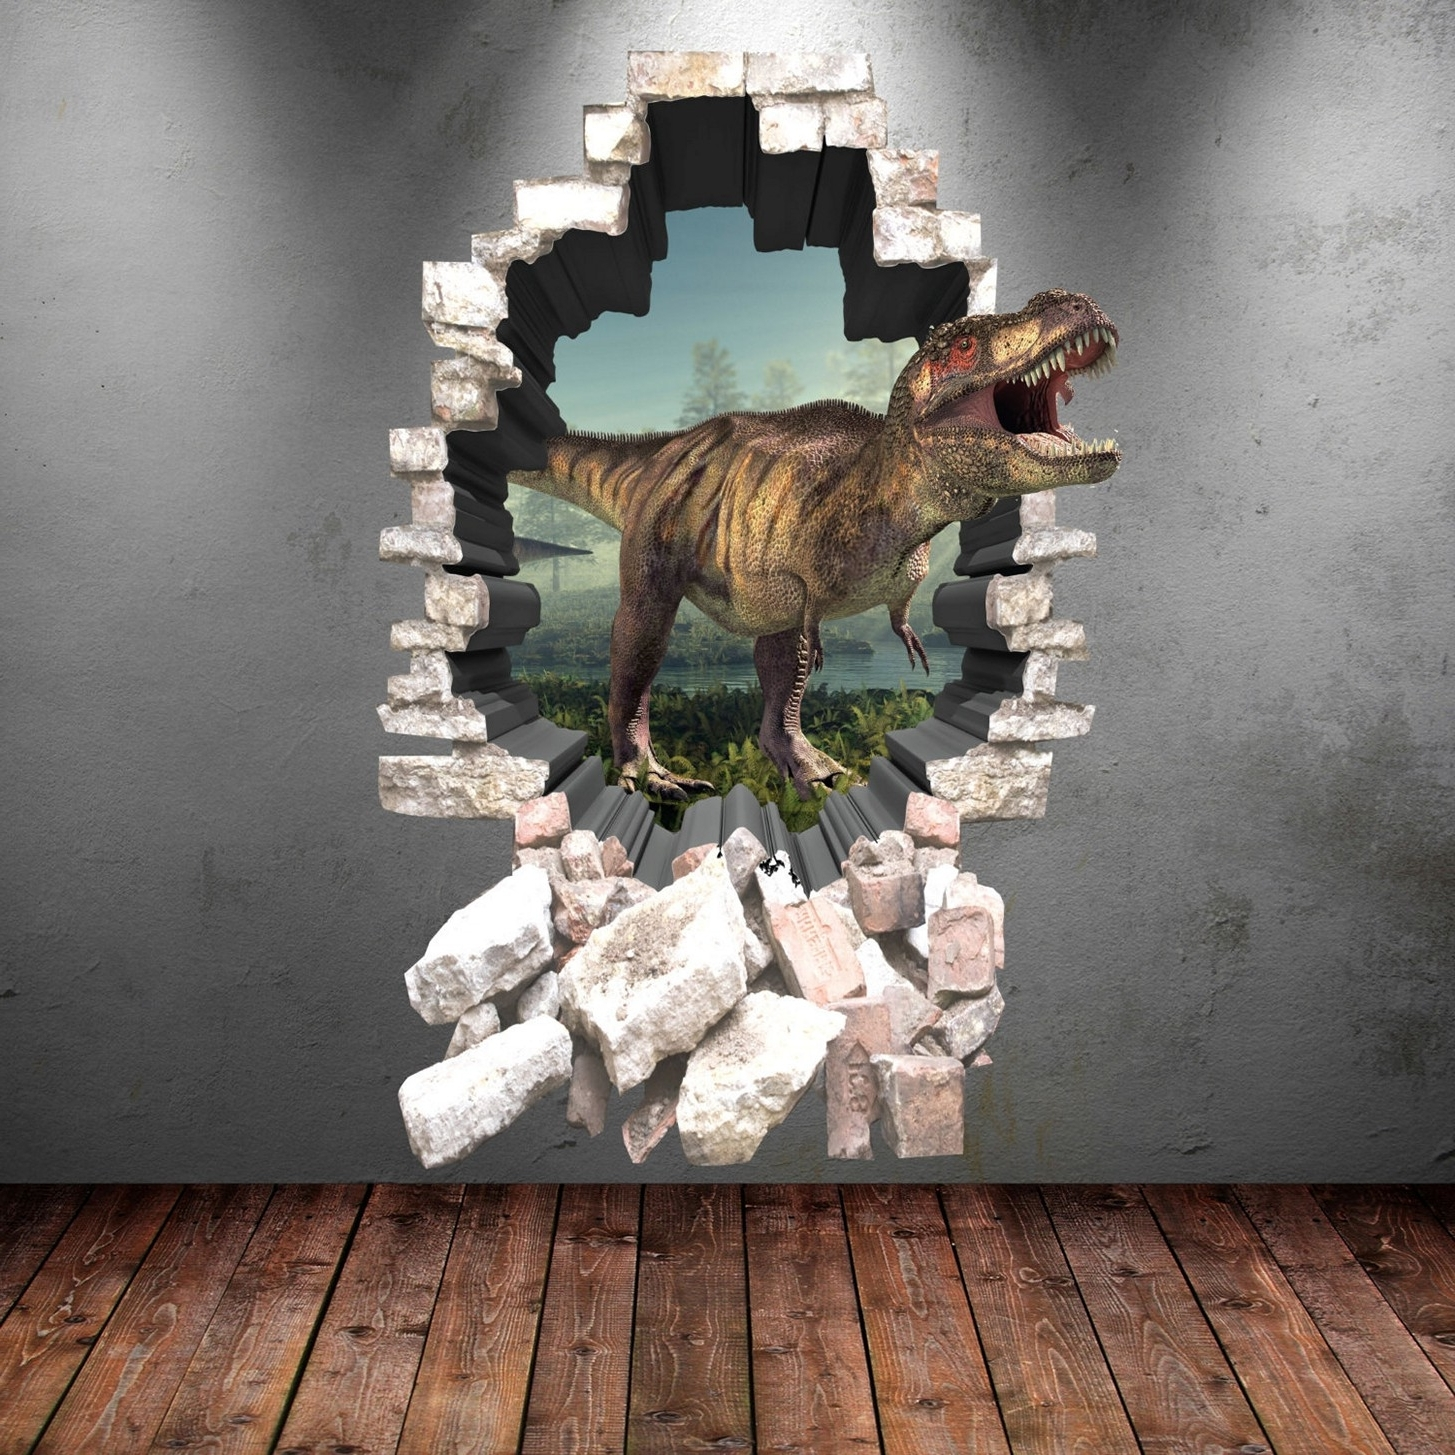 Newest 3D Floor Art Bathroom In 3D Wall Art For Bathroom (View 13 of 15)